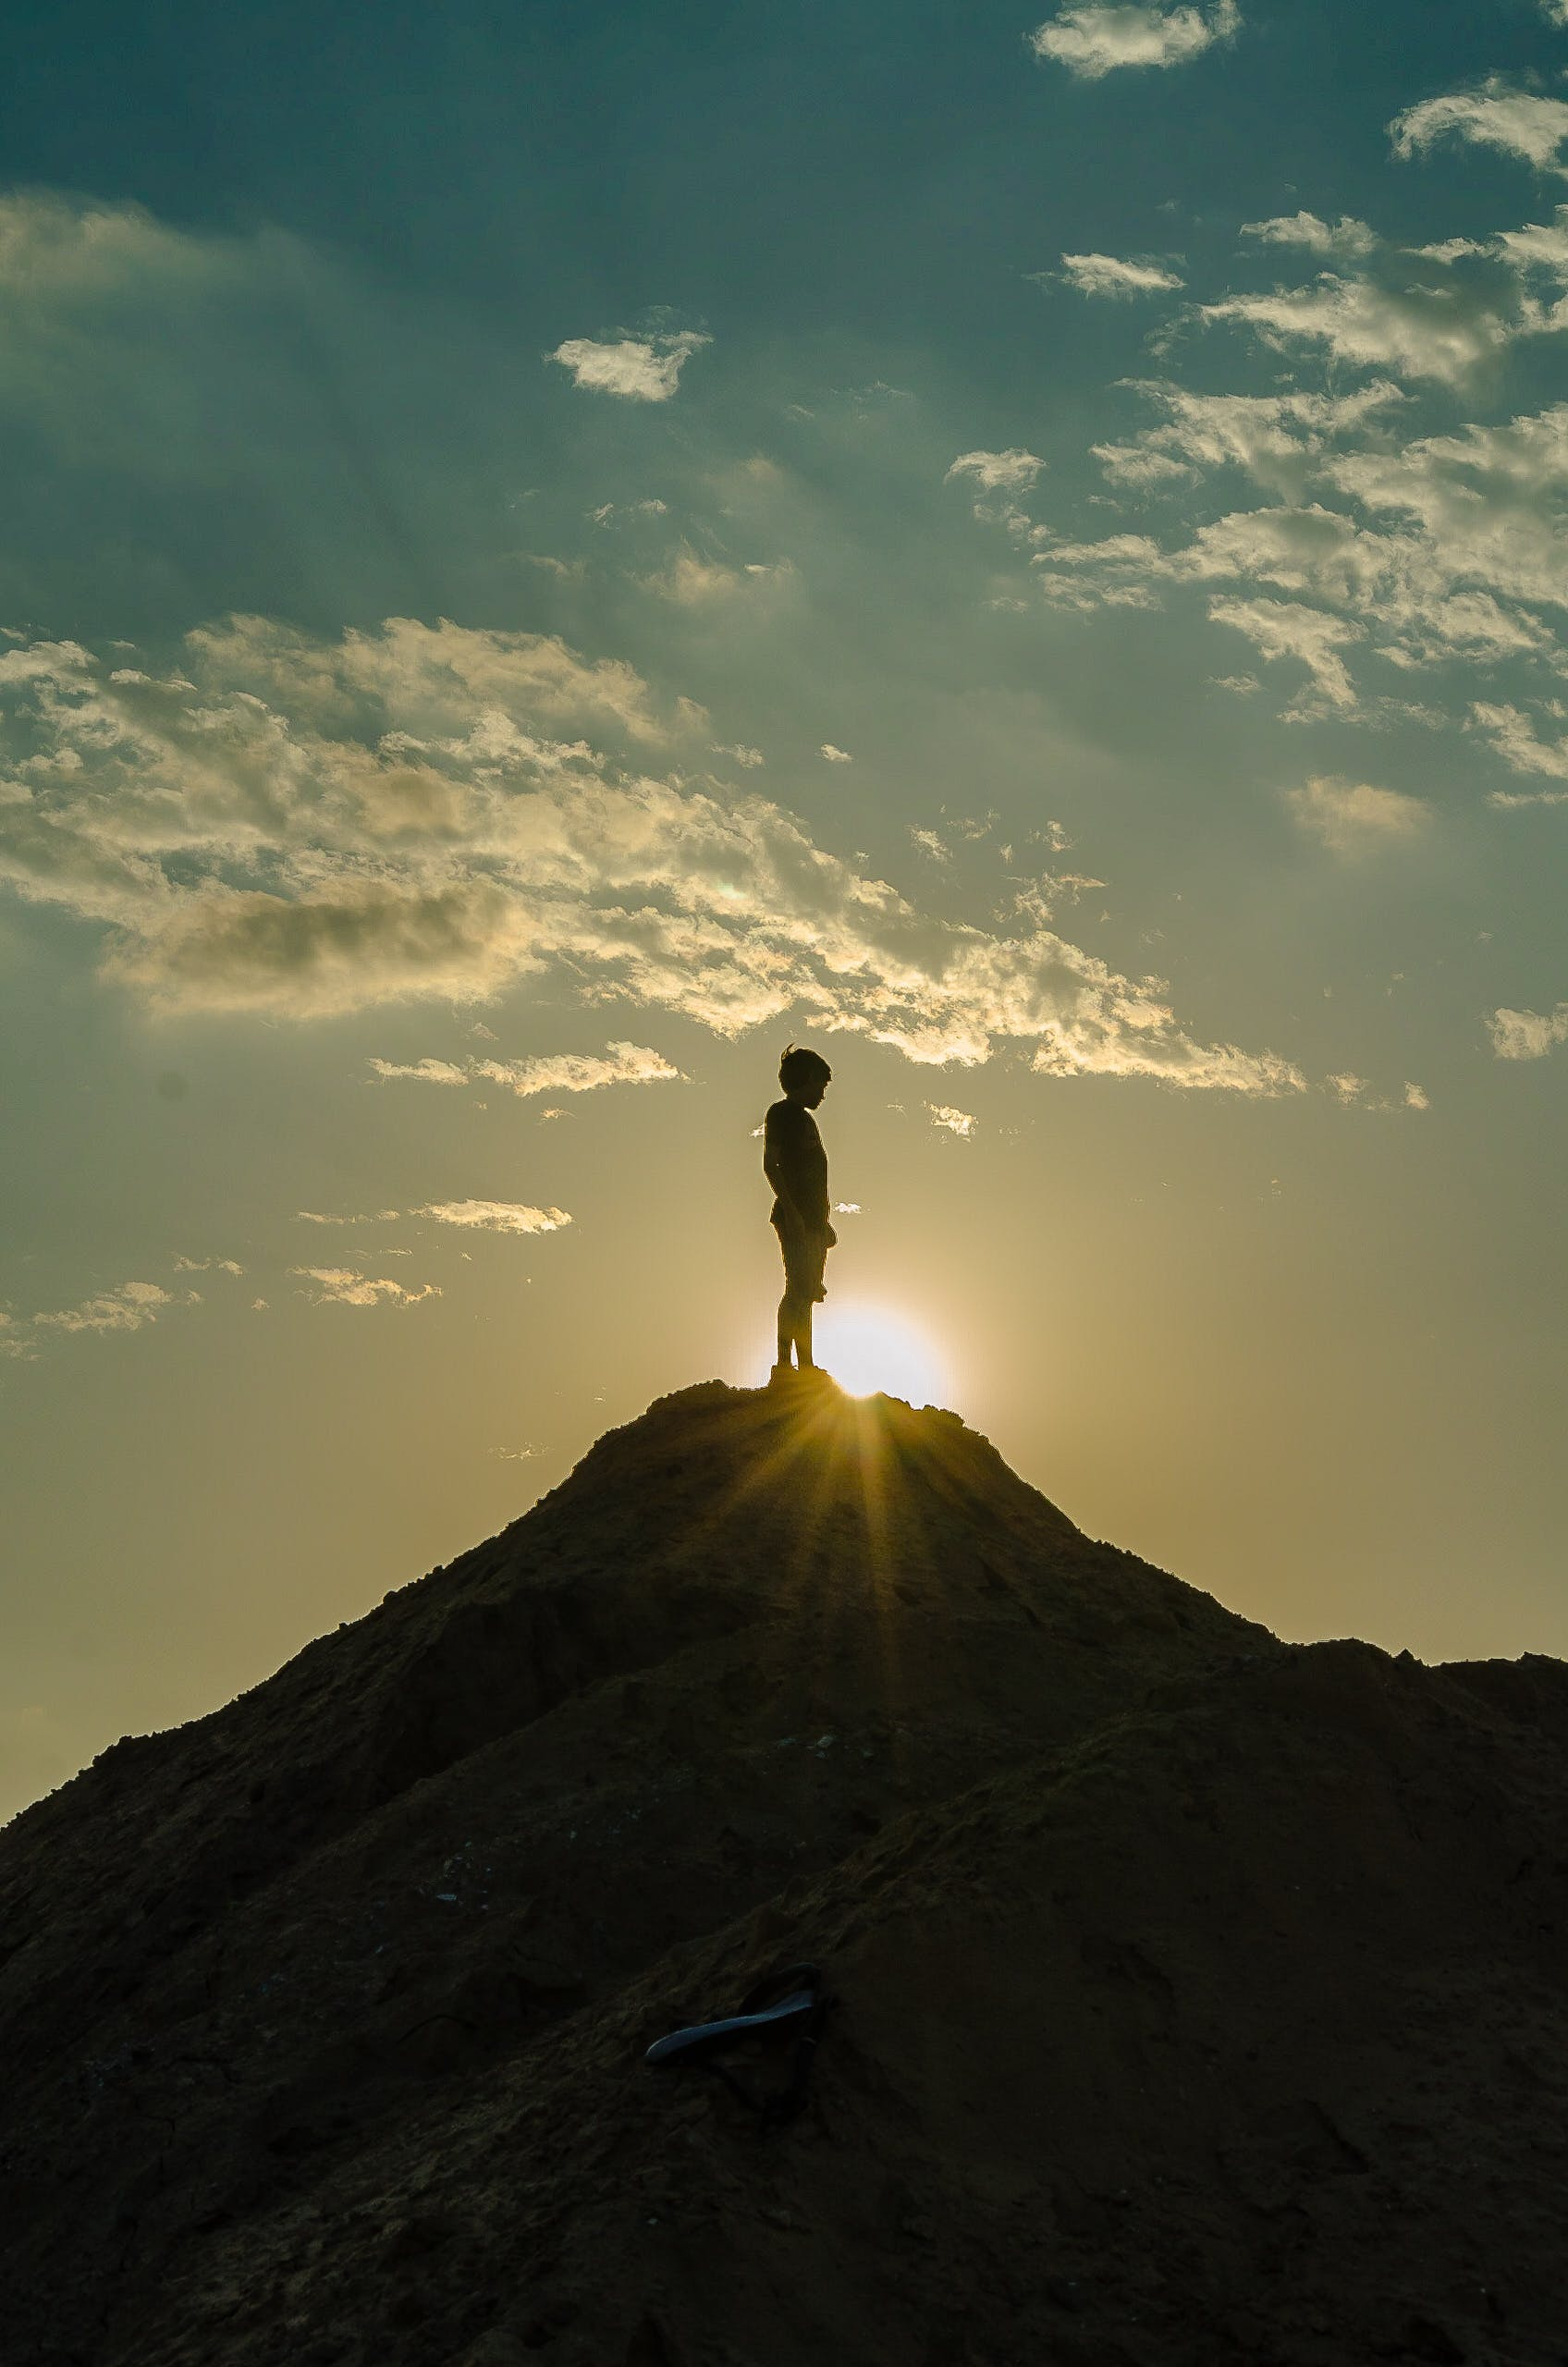 Silhouette of a Man Standing on a Mountain